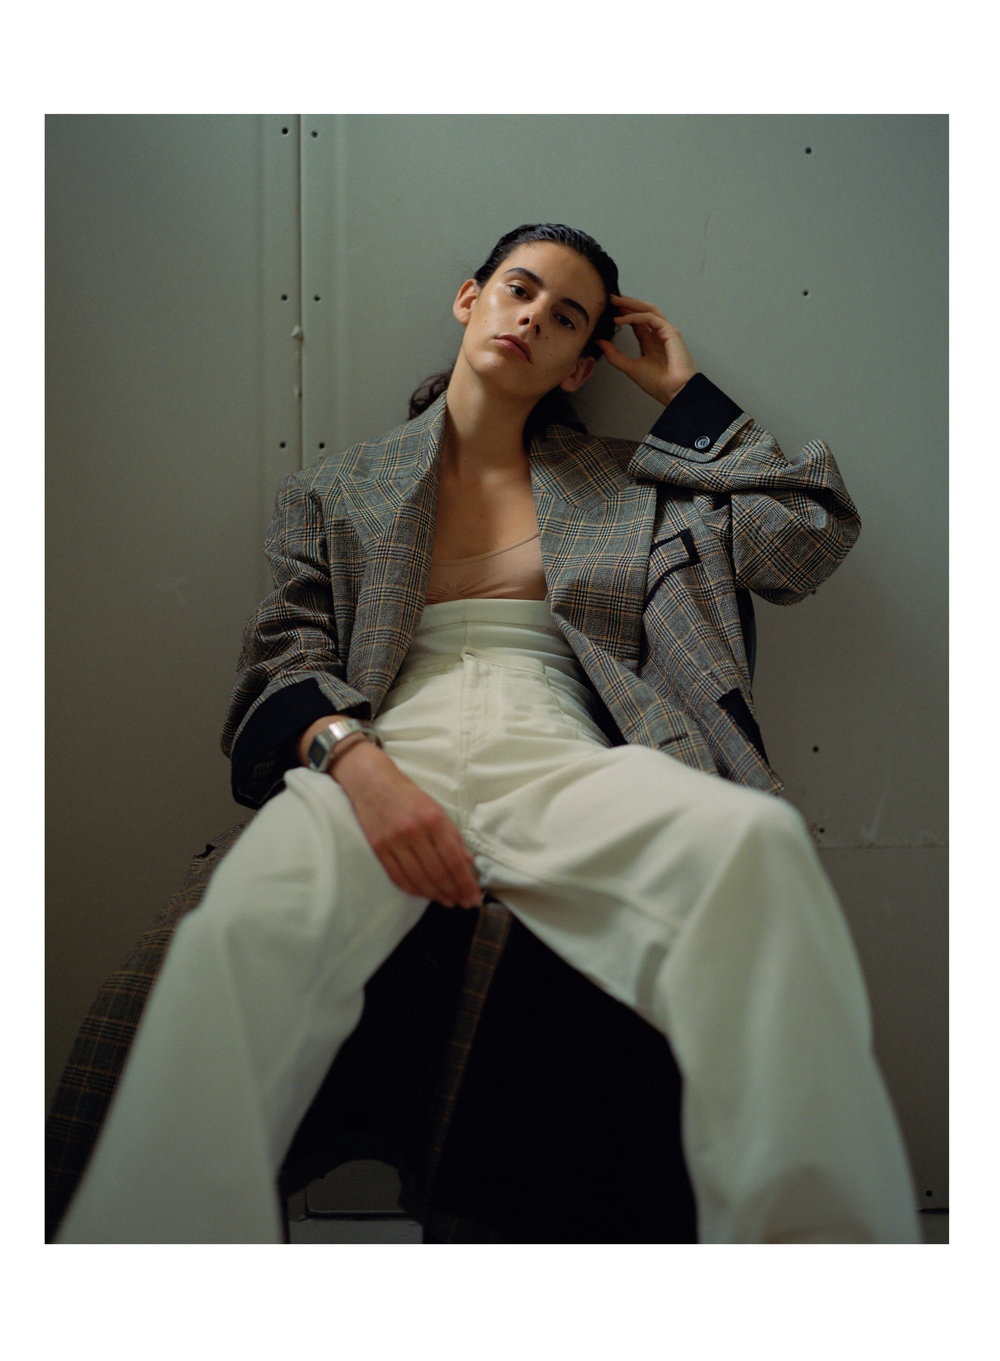 COAT AND PANTS  MAISON   MARGIELA    WATCH  BLESS    BODY SUIT  MAX THOMAS SANDERSON